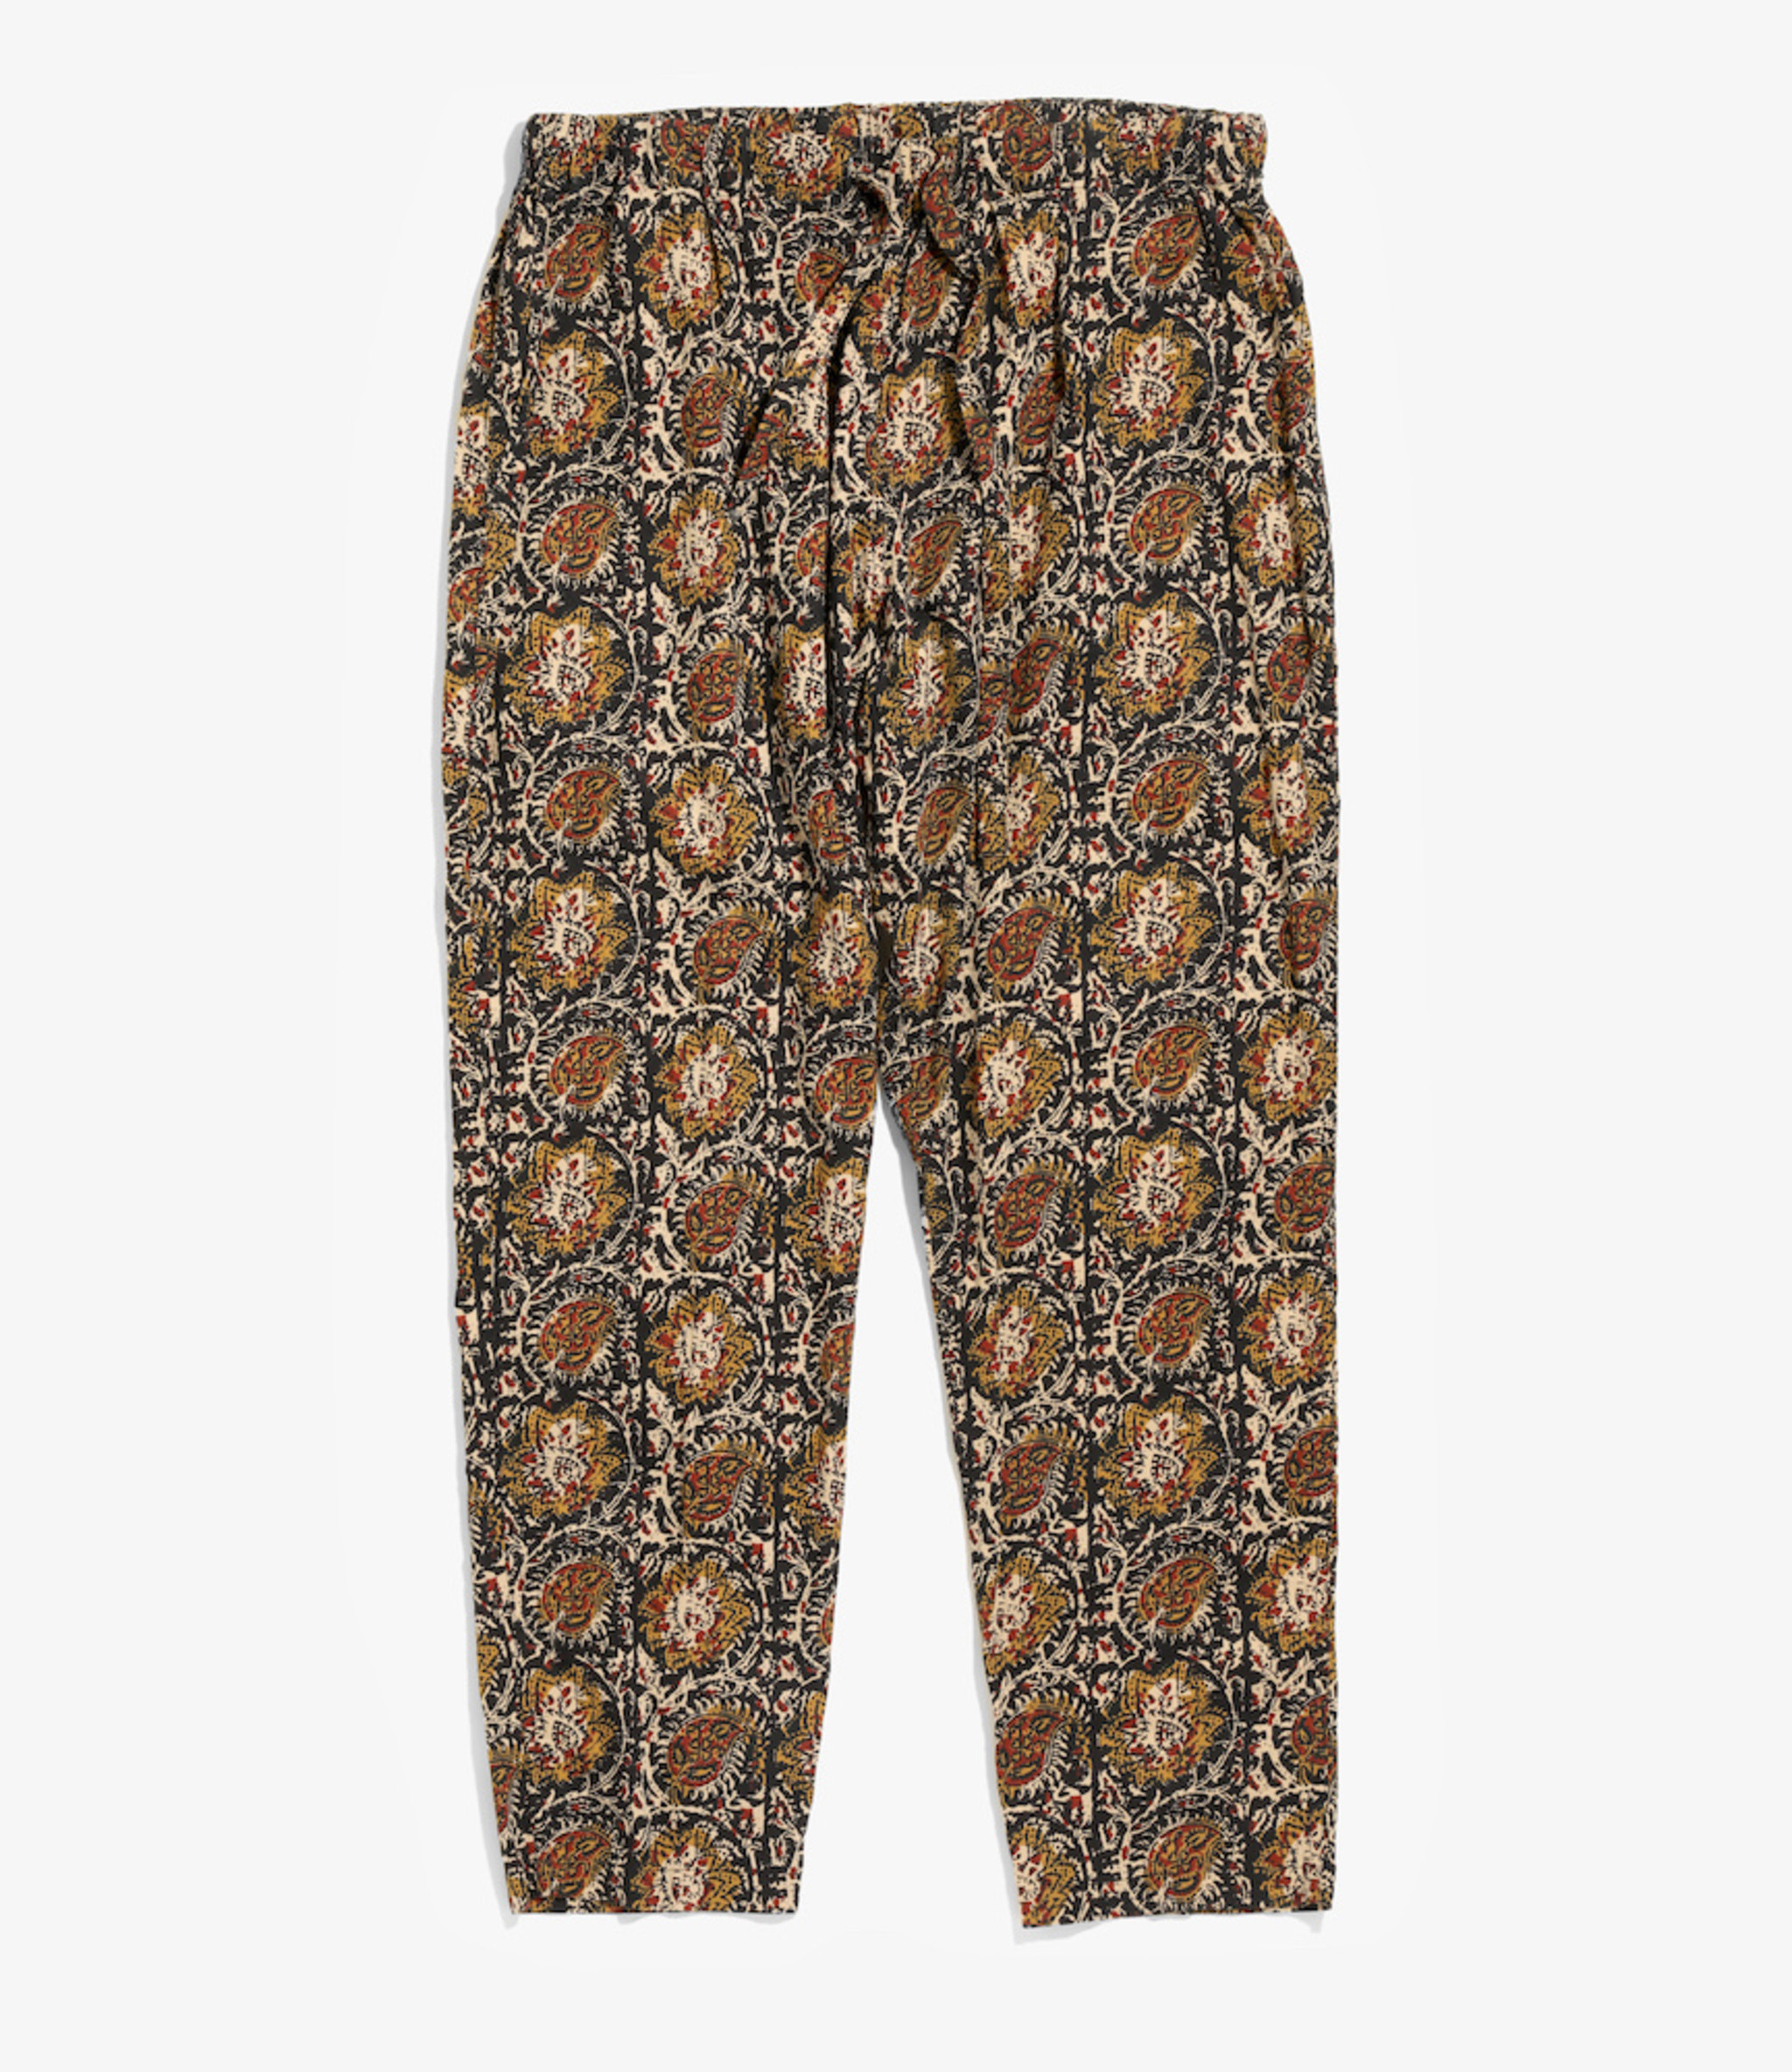 South2 West8 String Slack Pant - Printed Flannel / Paisley - Black